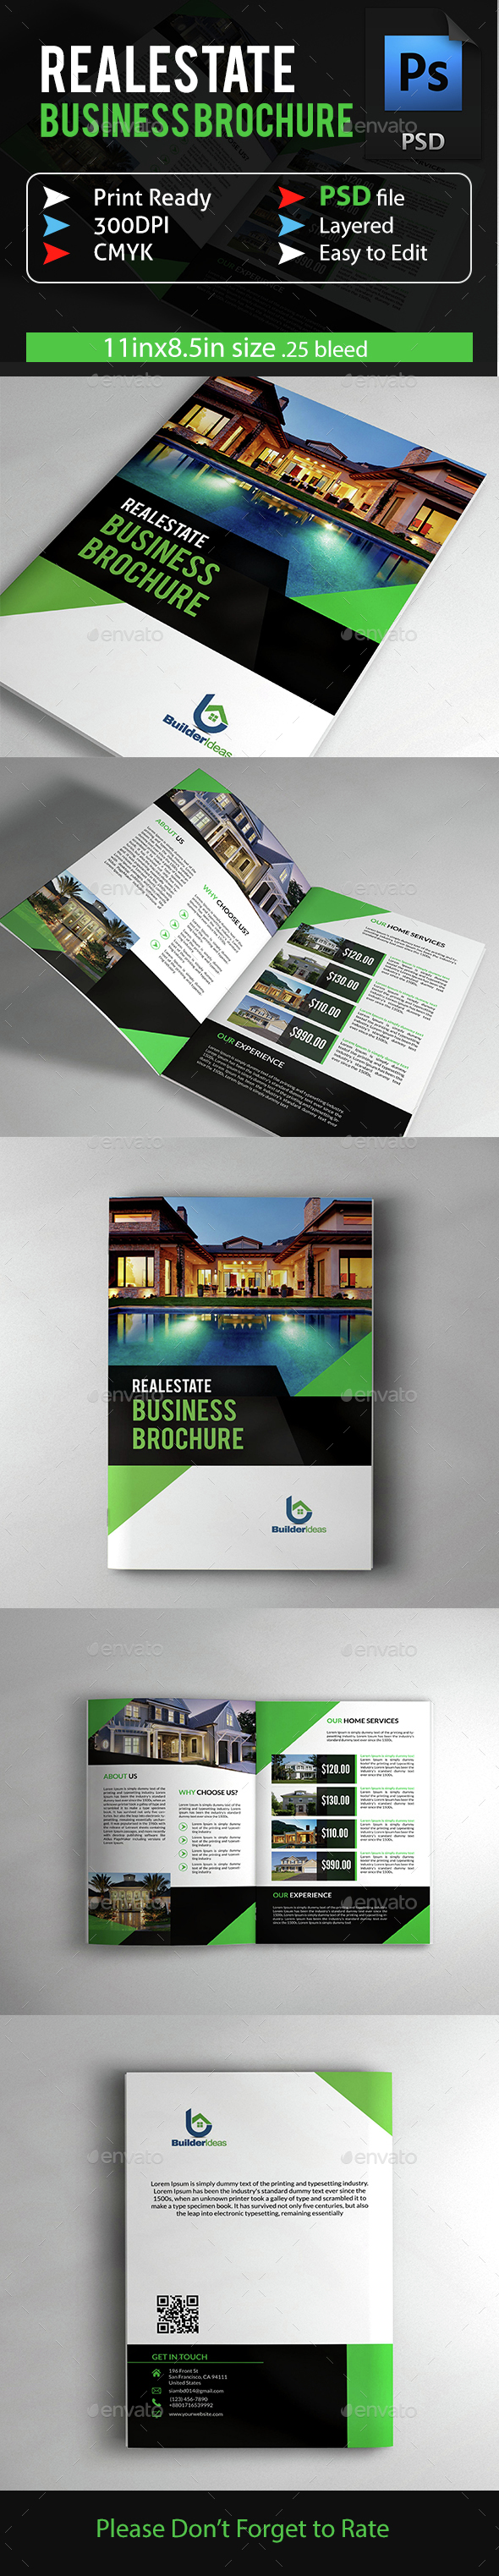 Real Estate Business Brochure - Brochures Print Templates